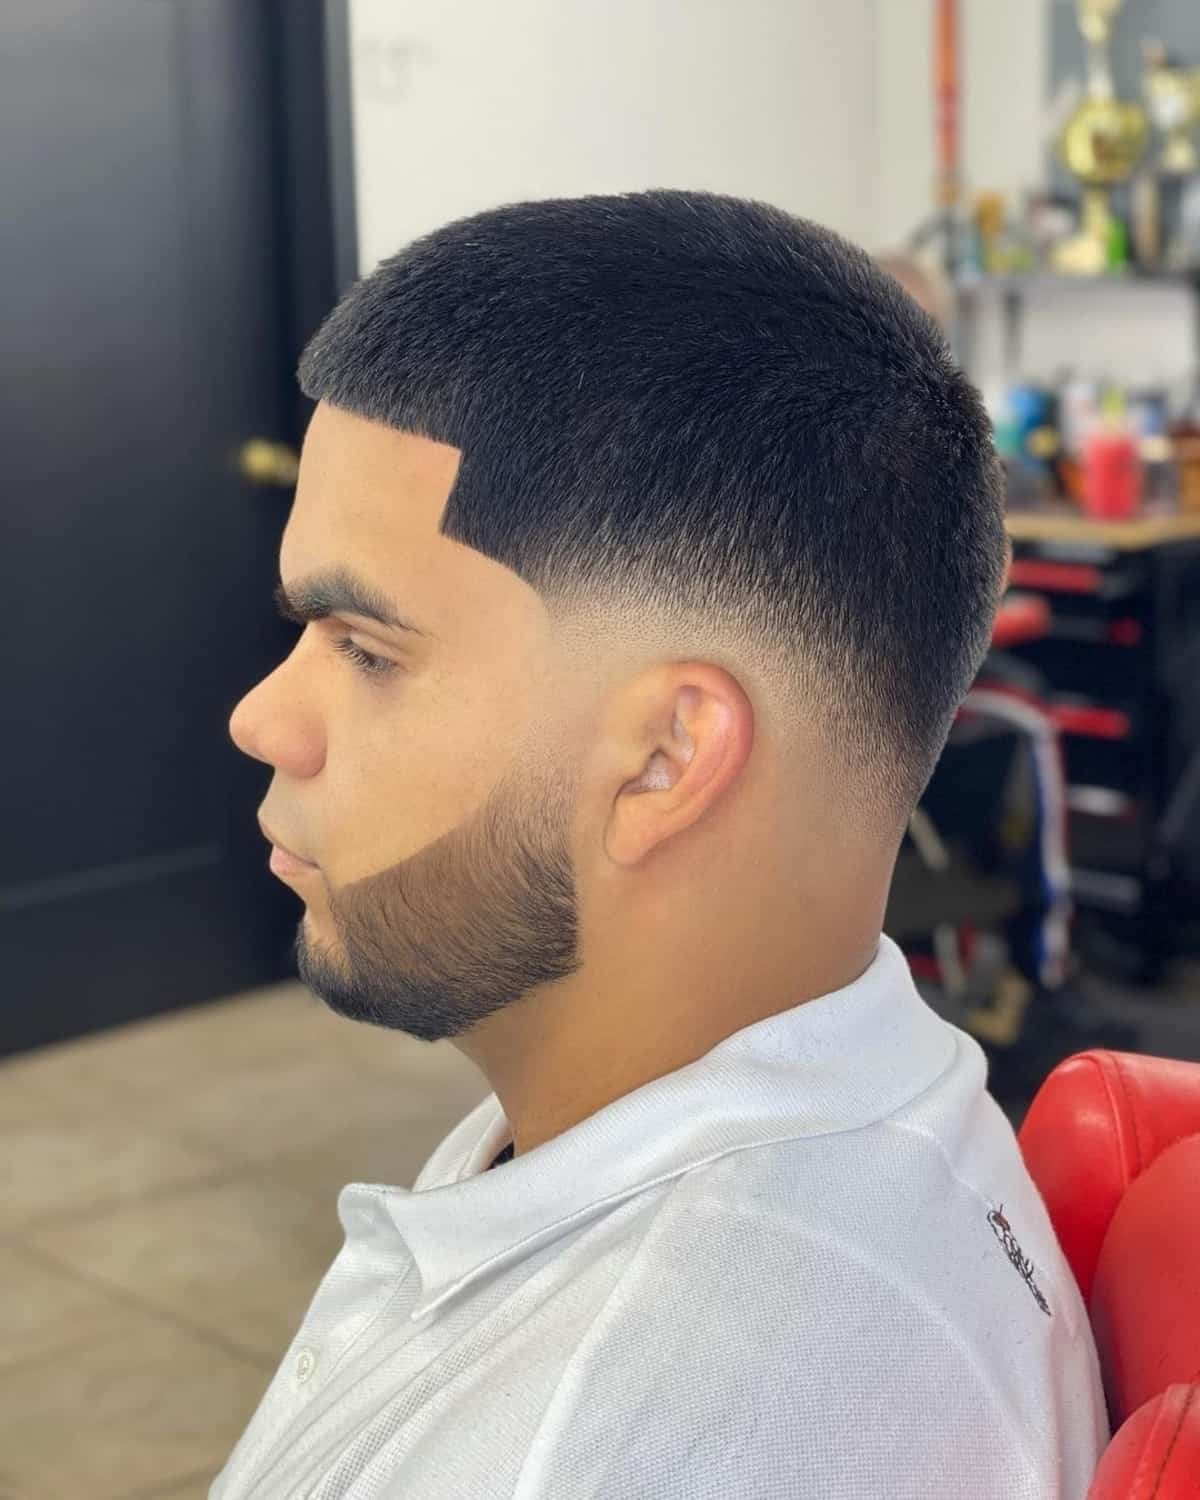 21 Best Military Haircut Ideas for a Clean and Crisp Look